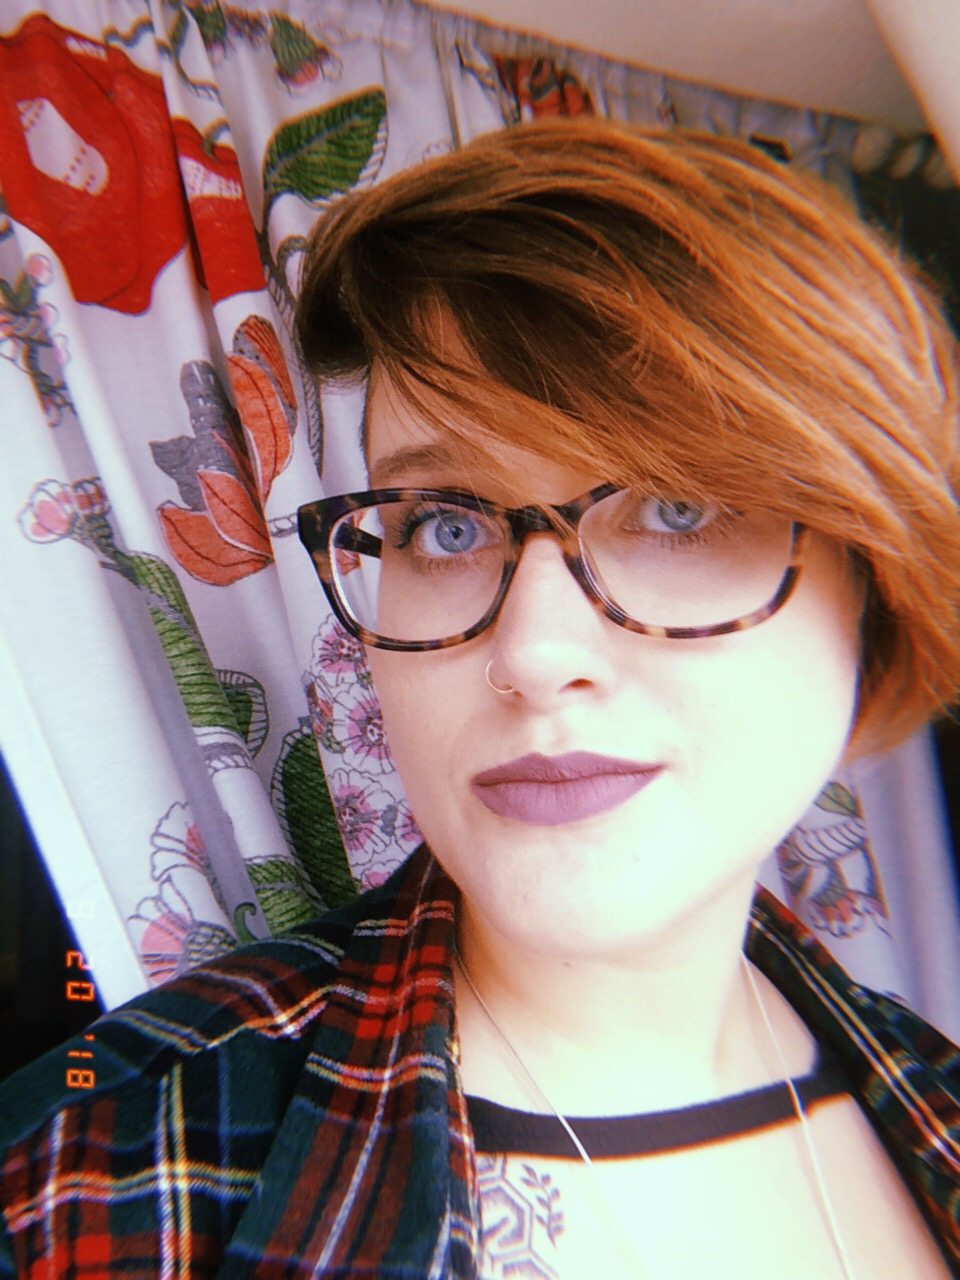 I'm bisexual. I'm living with depression and anxiety. I'm gender-non-conforming. I am still learning who I am every day. -